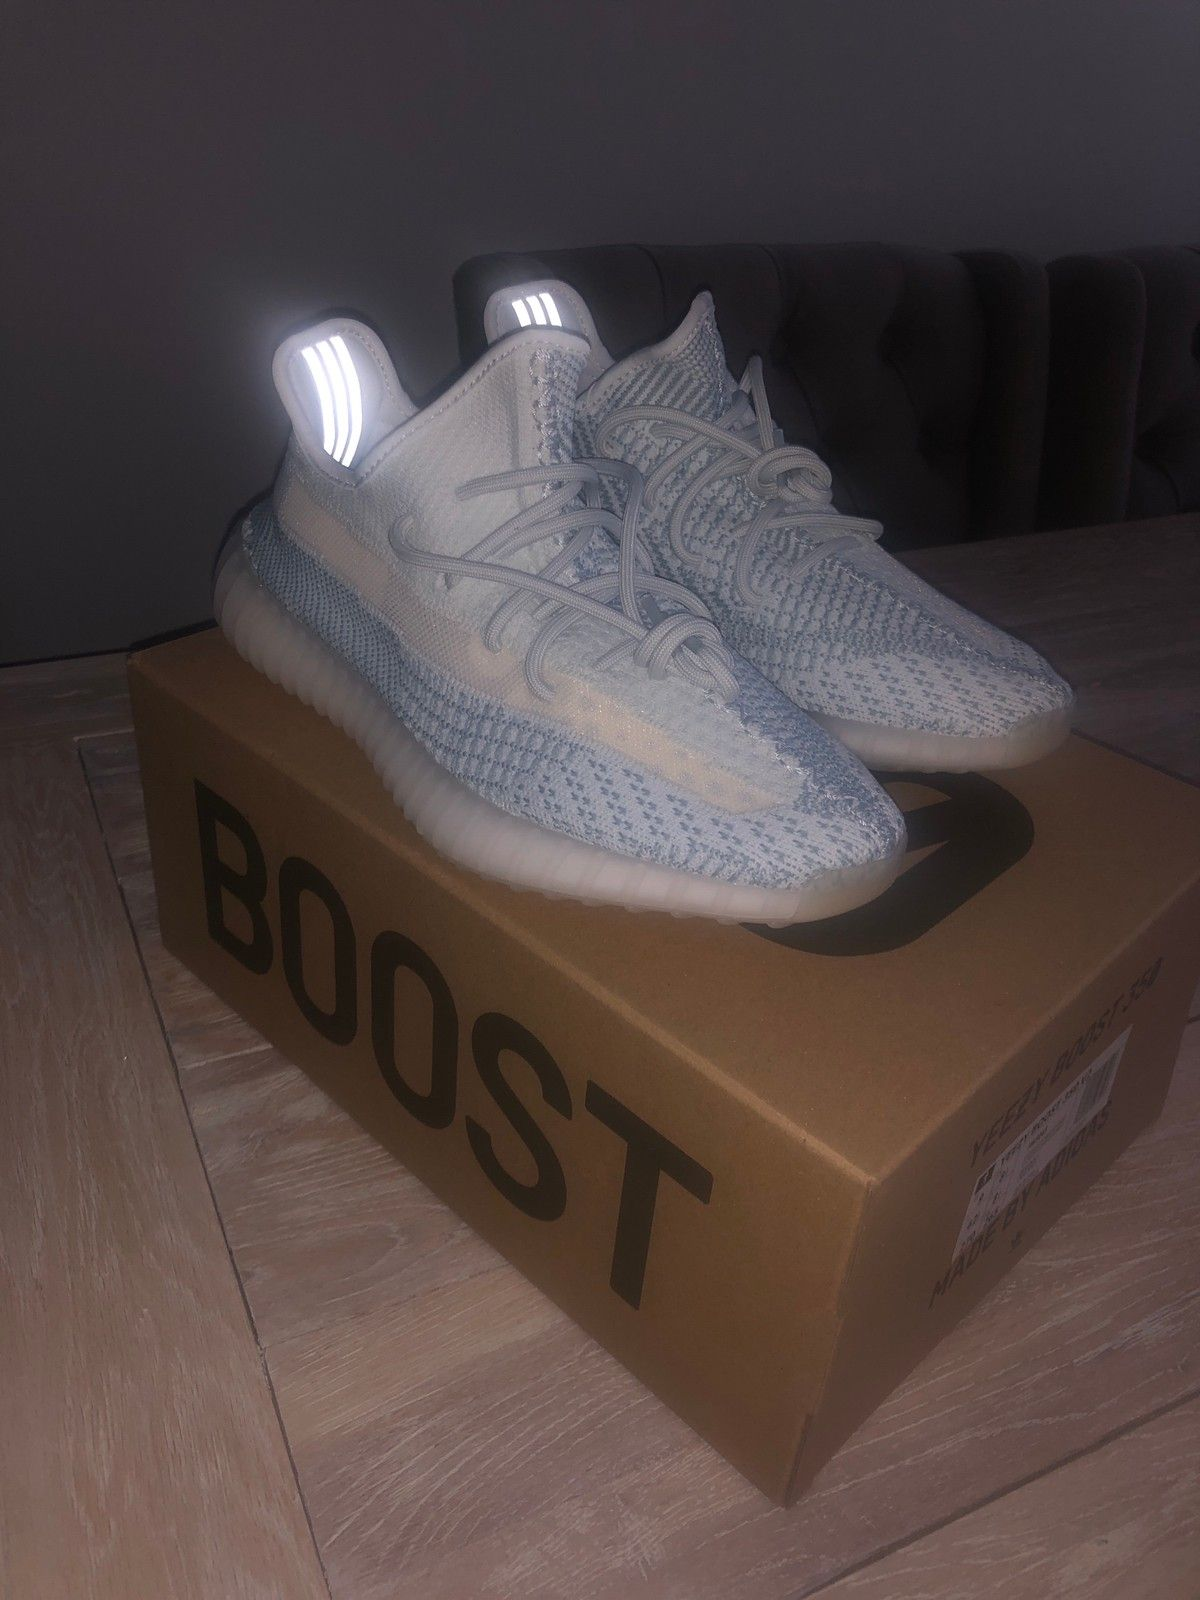 Adidas Yeezy Boost 350 V2 Cloud White Non Reflective